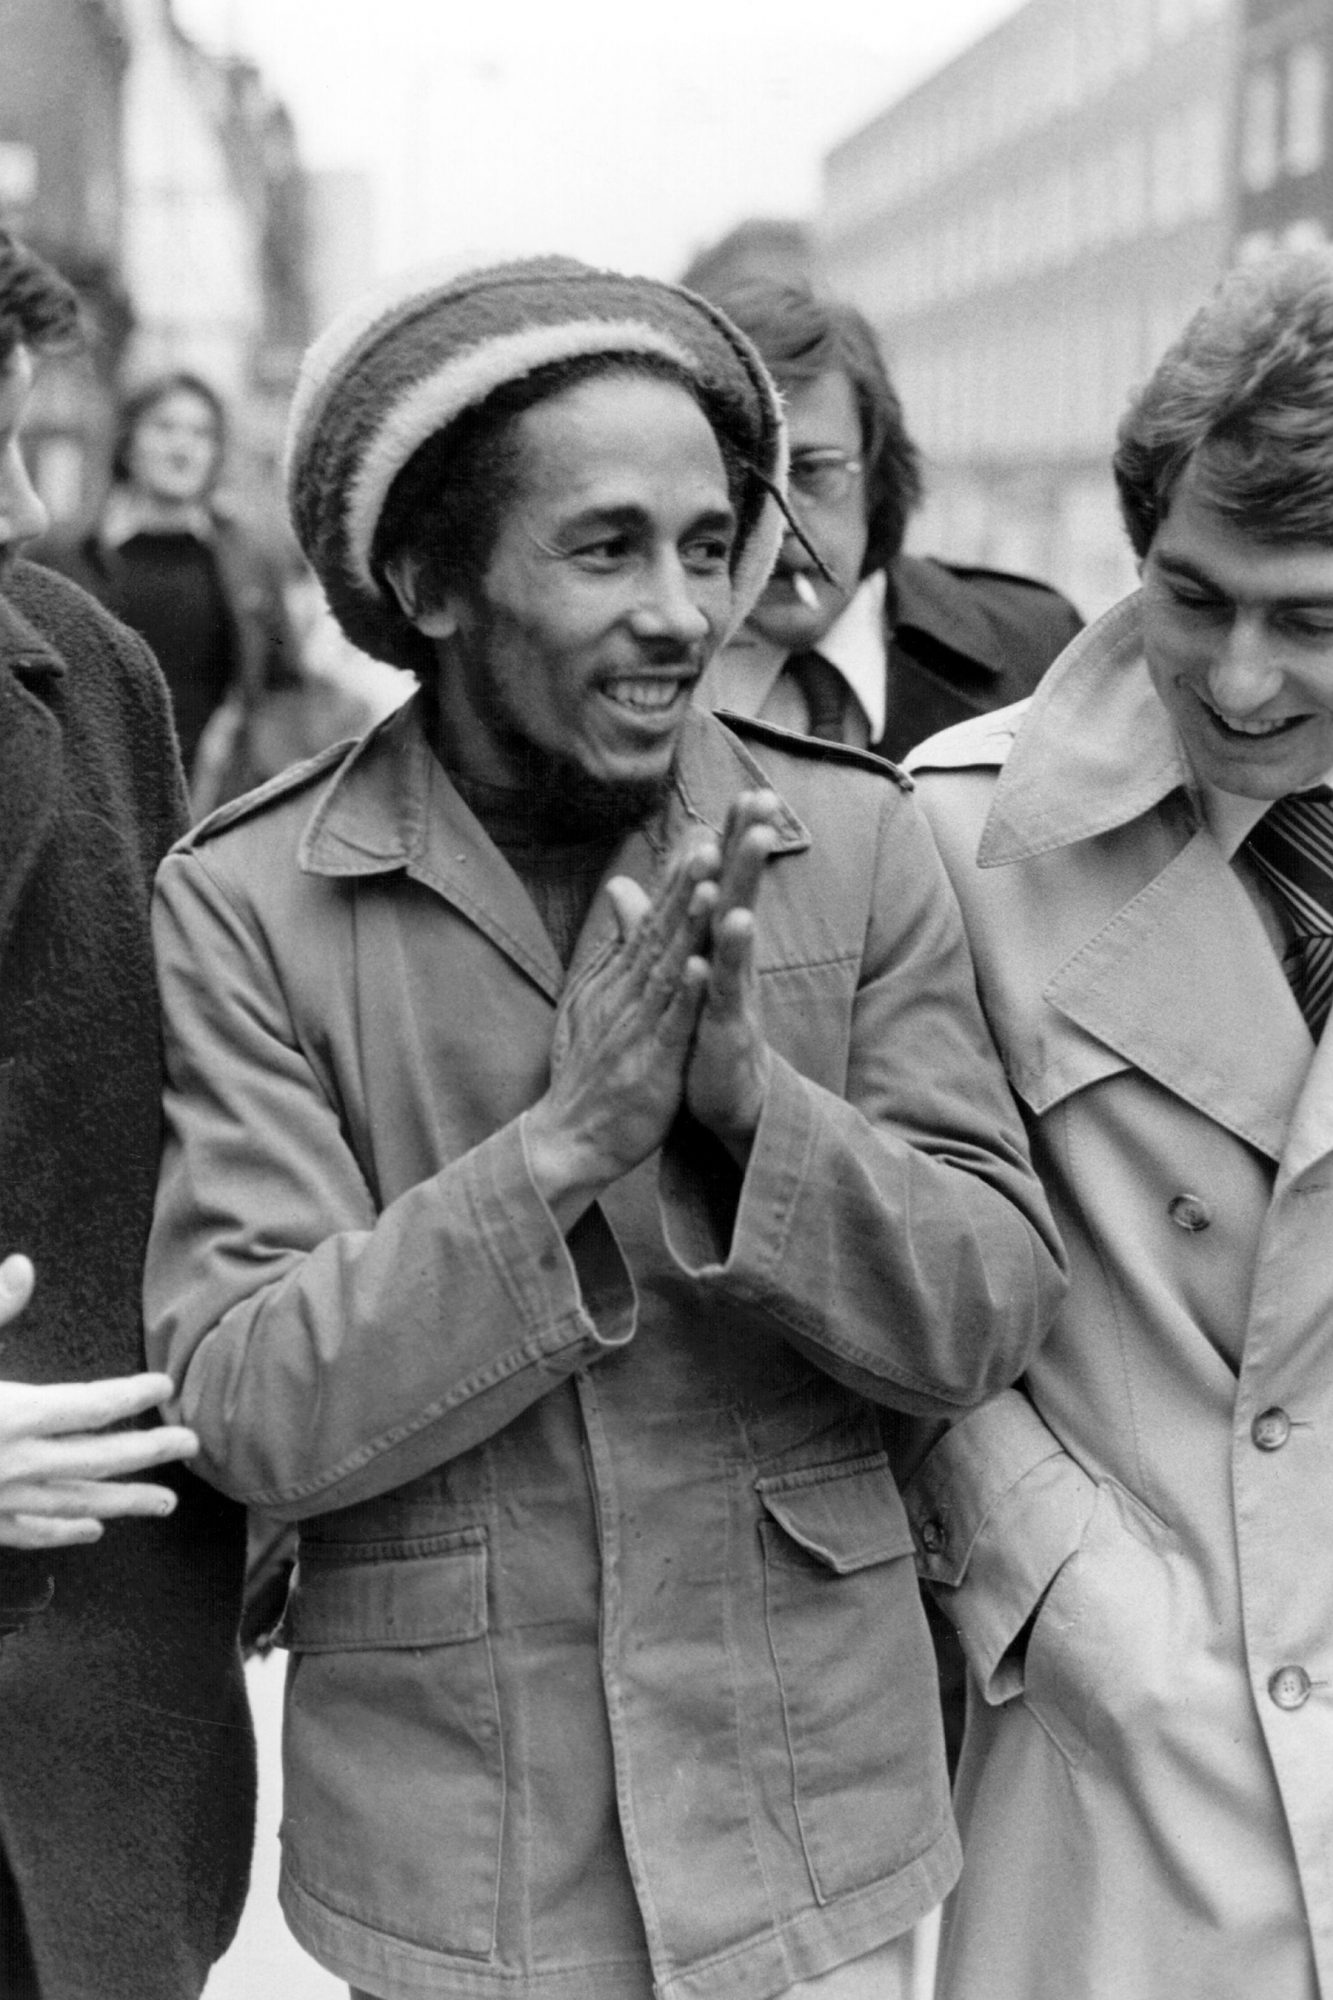 Bob Marley Outside the Marylebone Magistrates Court in London on April 6, 1977